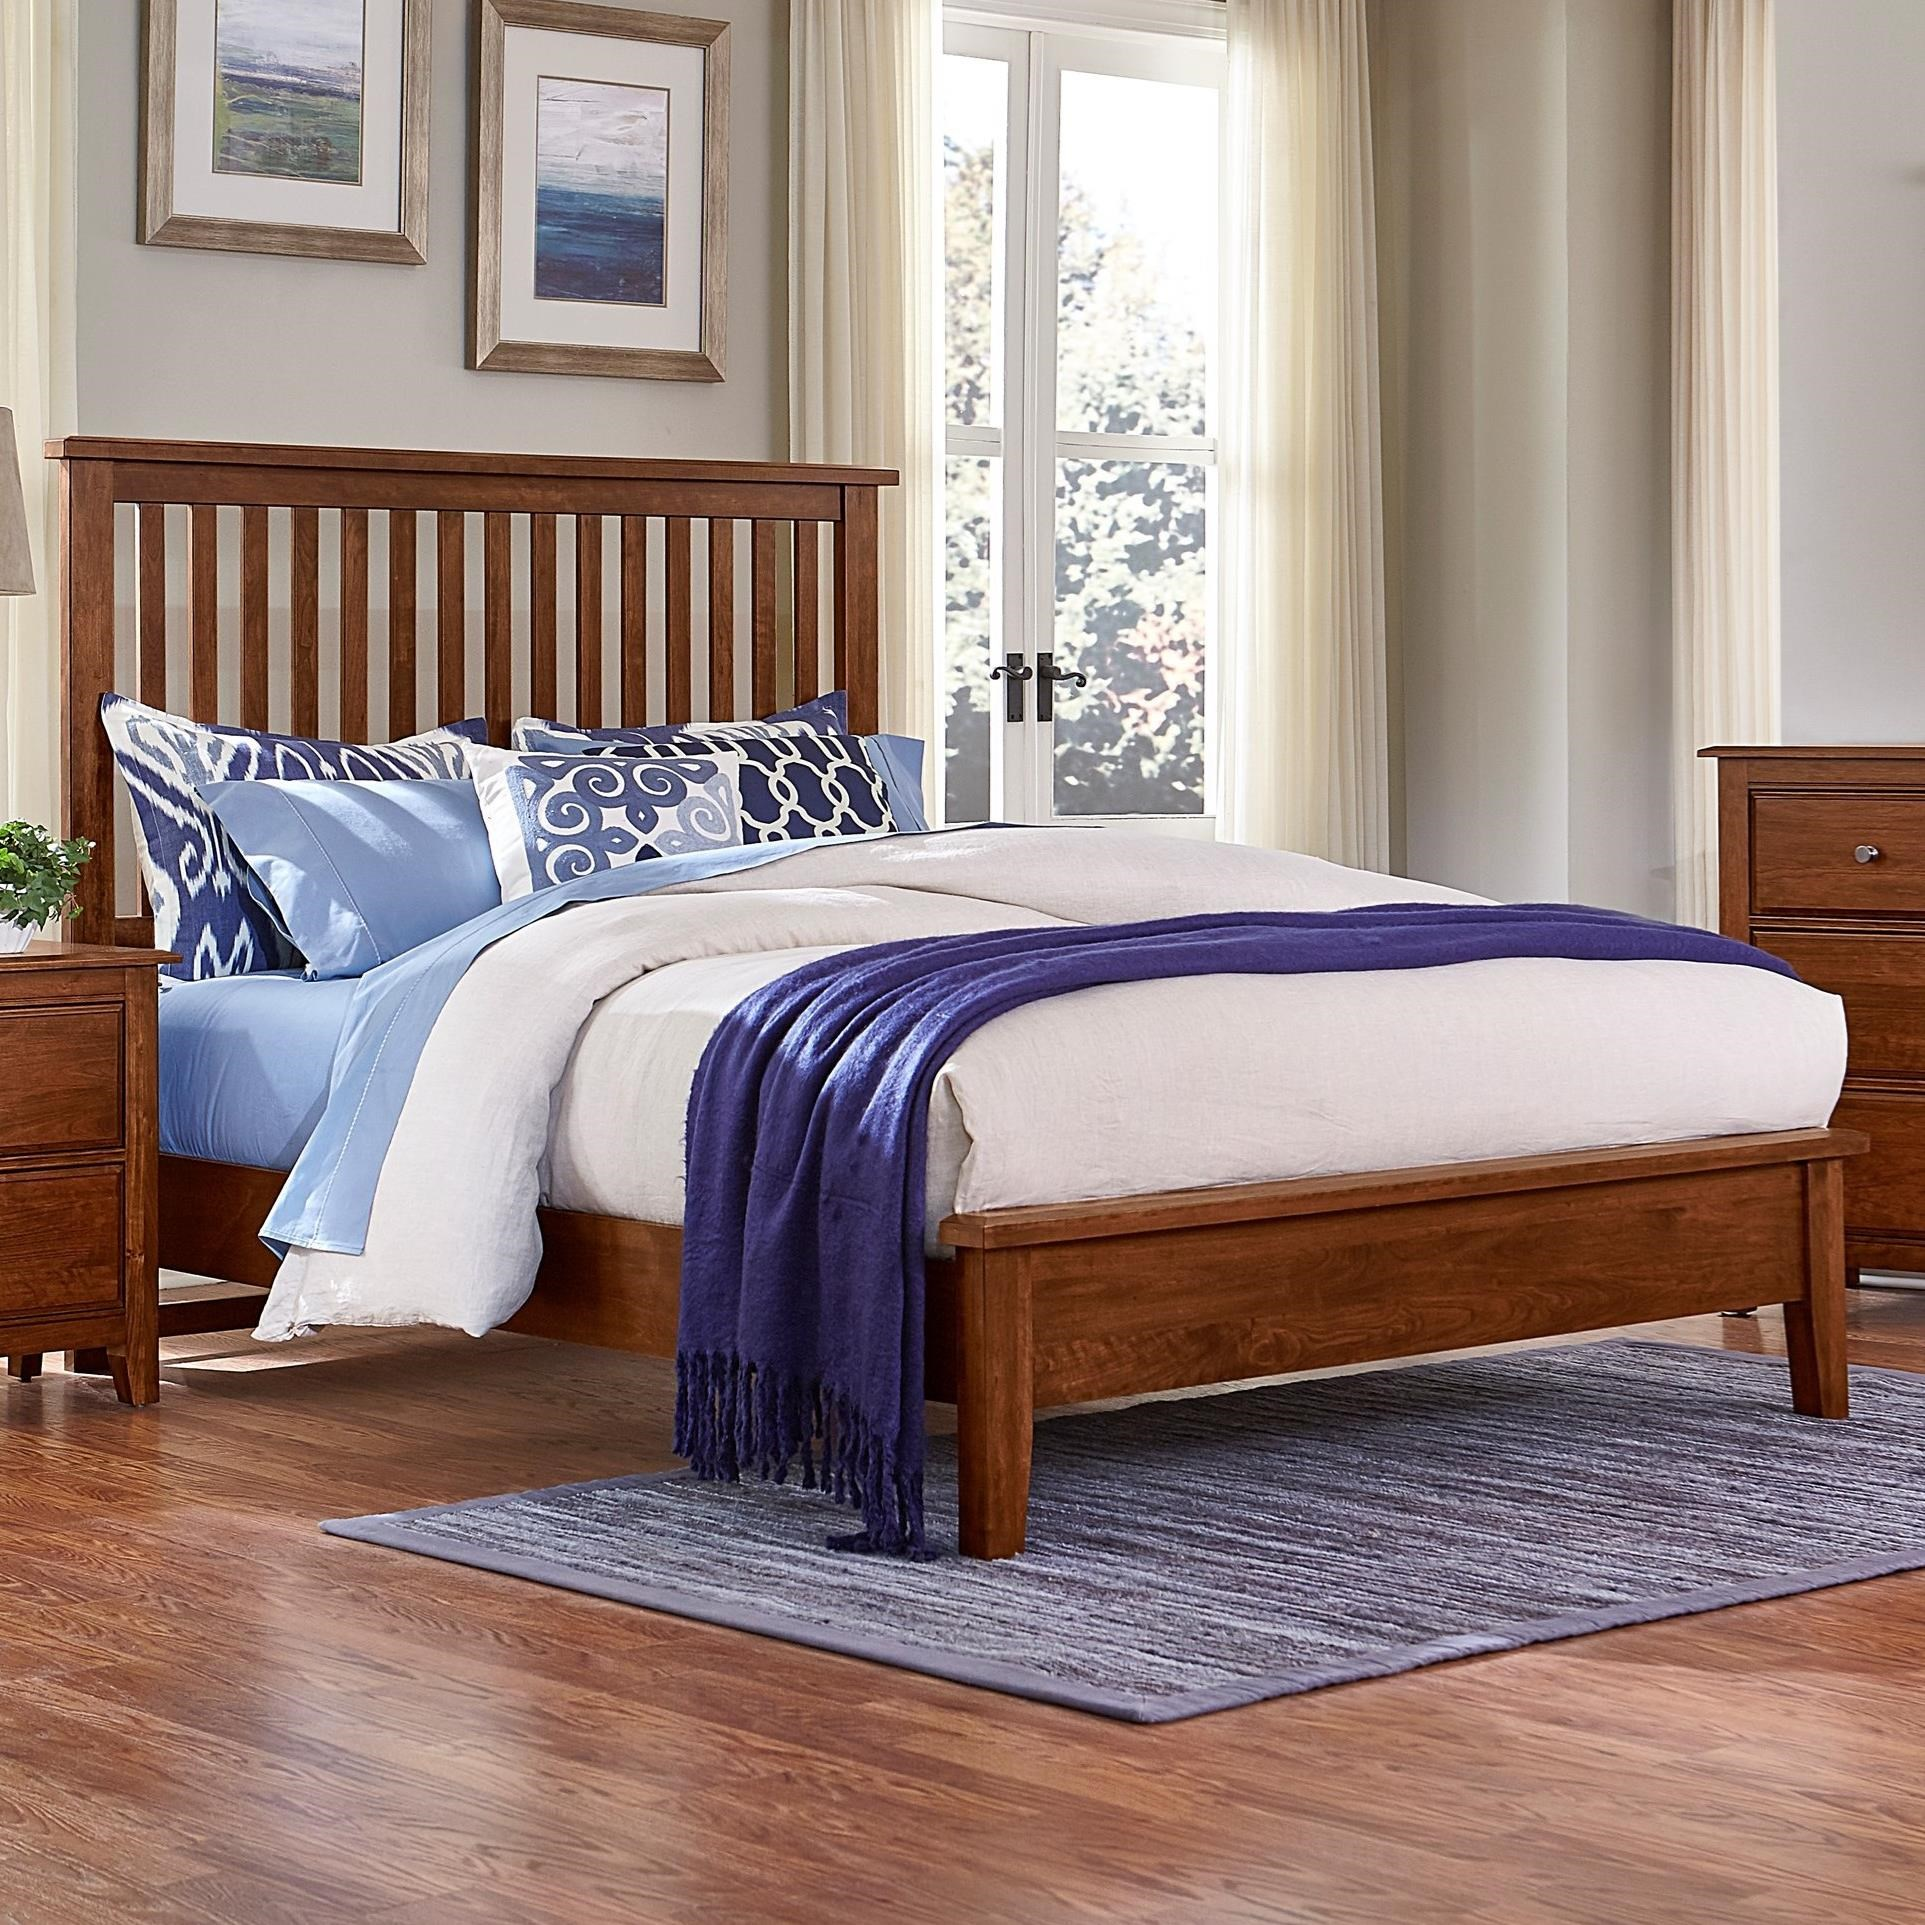 Artisan Choices Queen Slat Bed with Low Profile Footboard by Artisan & Post at Crowley Furniture & Mattress